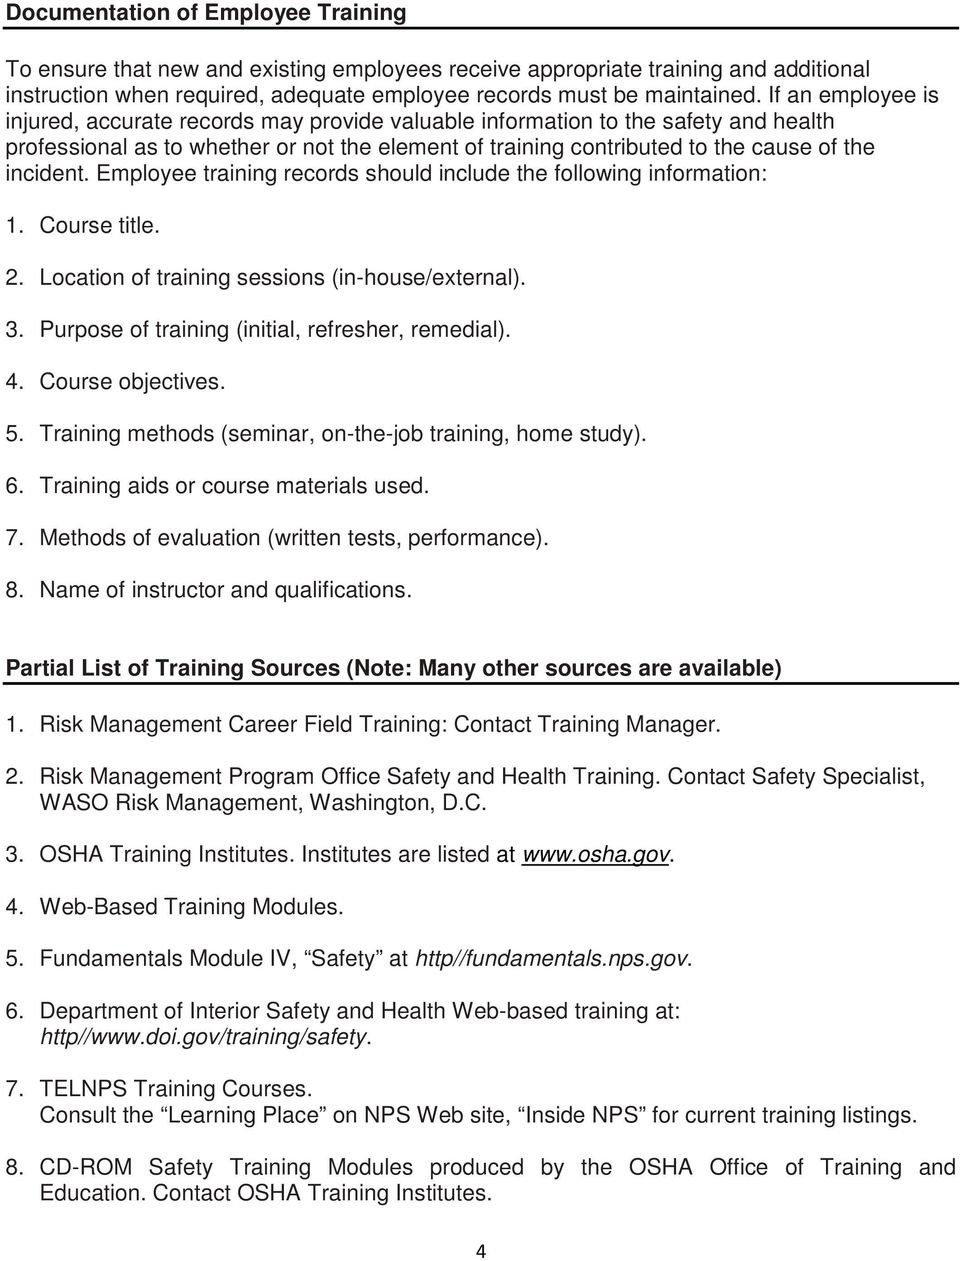 incident. Employee training records should include the following information: 1. Course title. 2. Location of training sessions (in-house/external). 3.